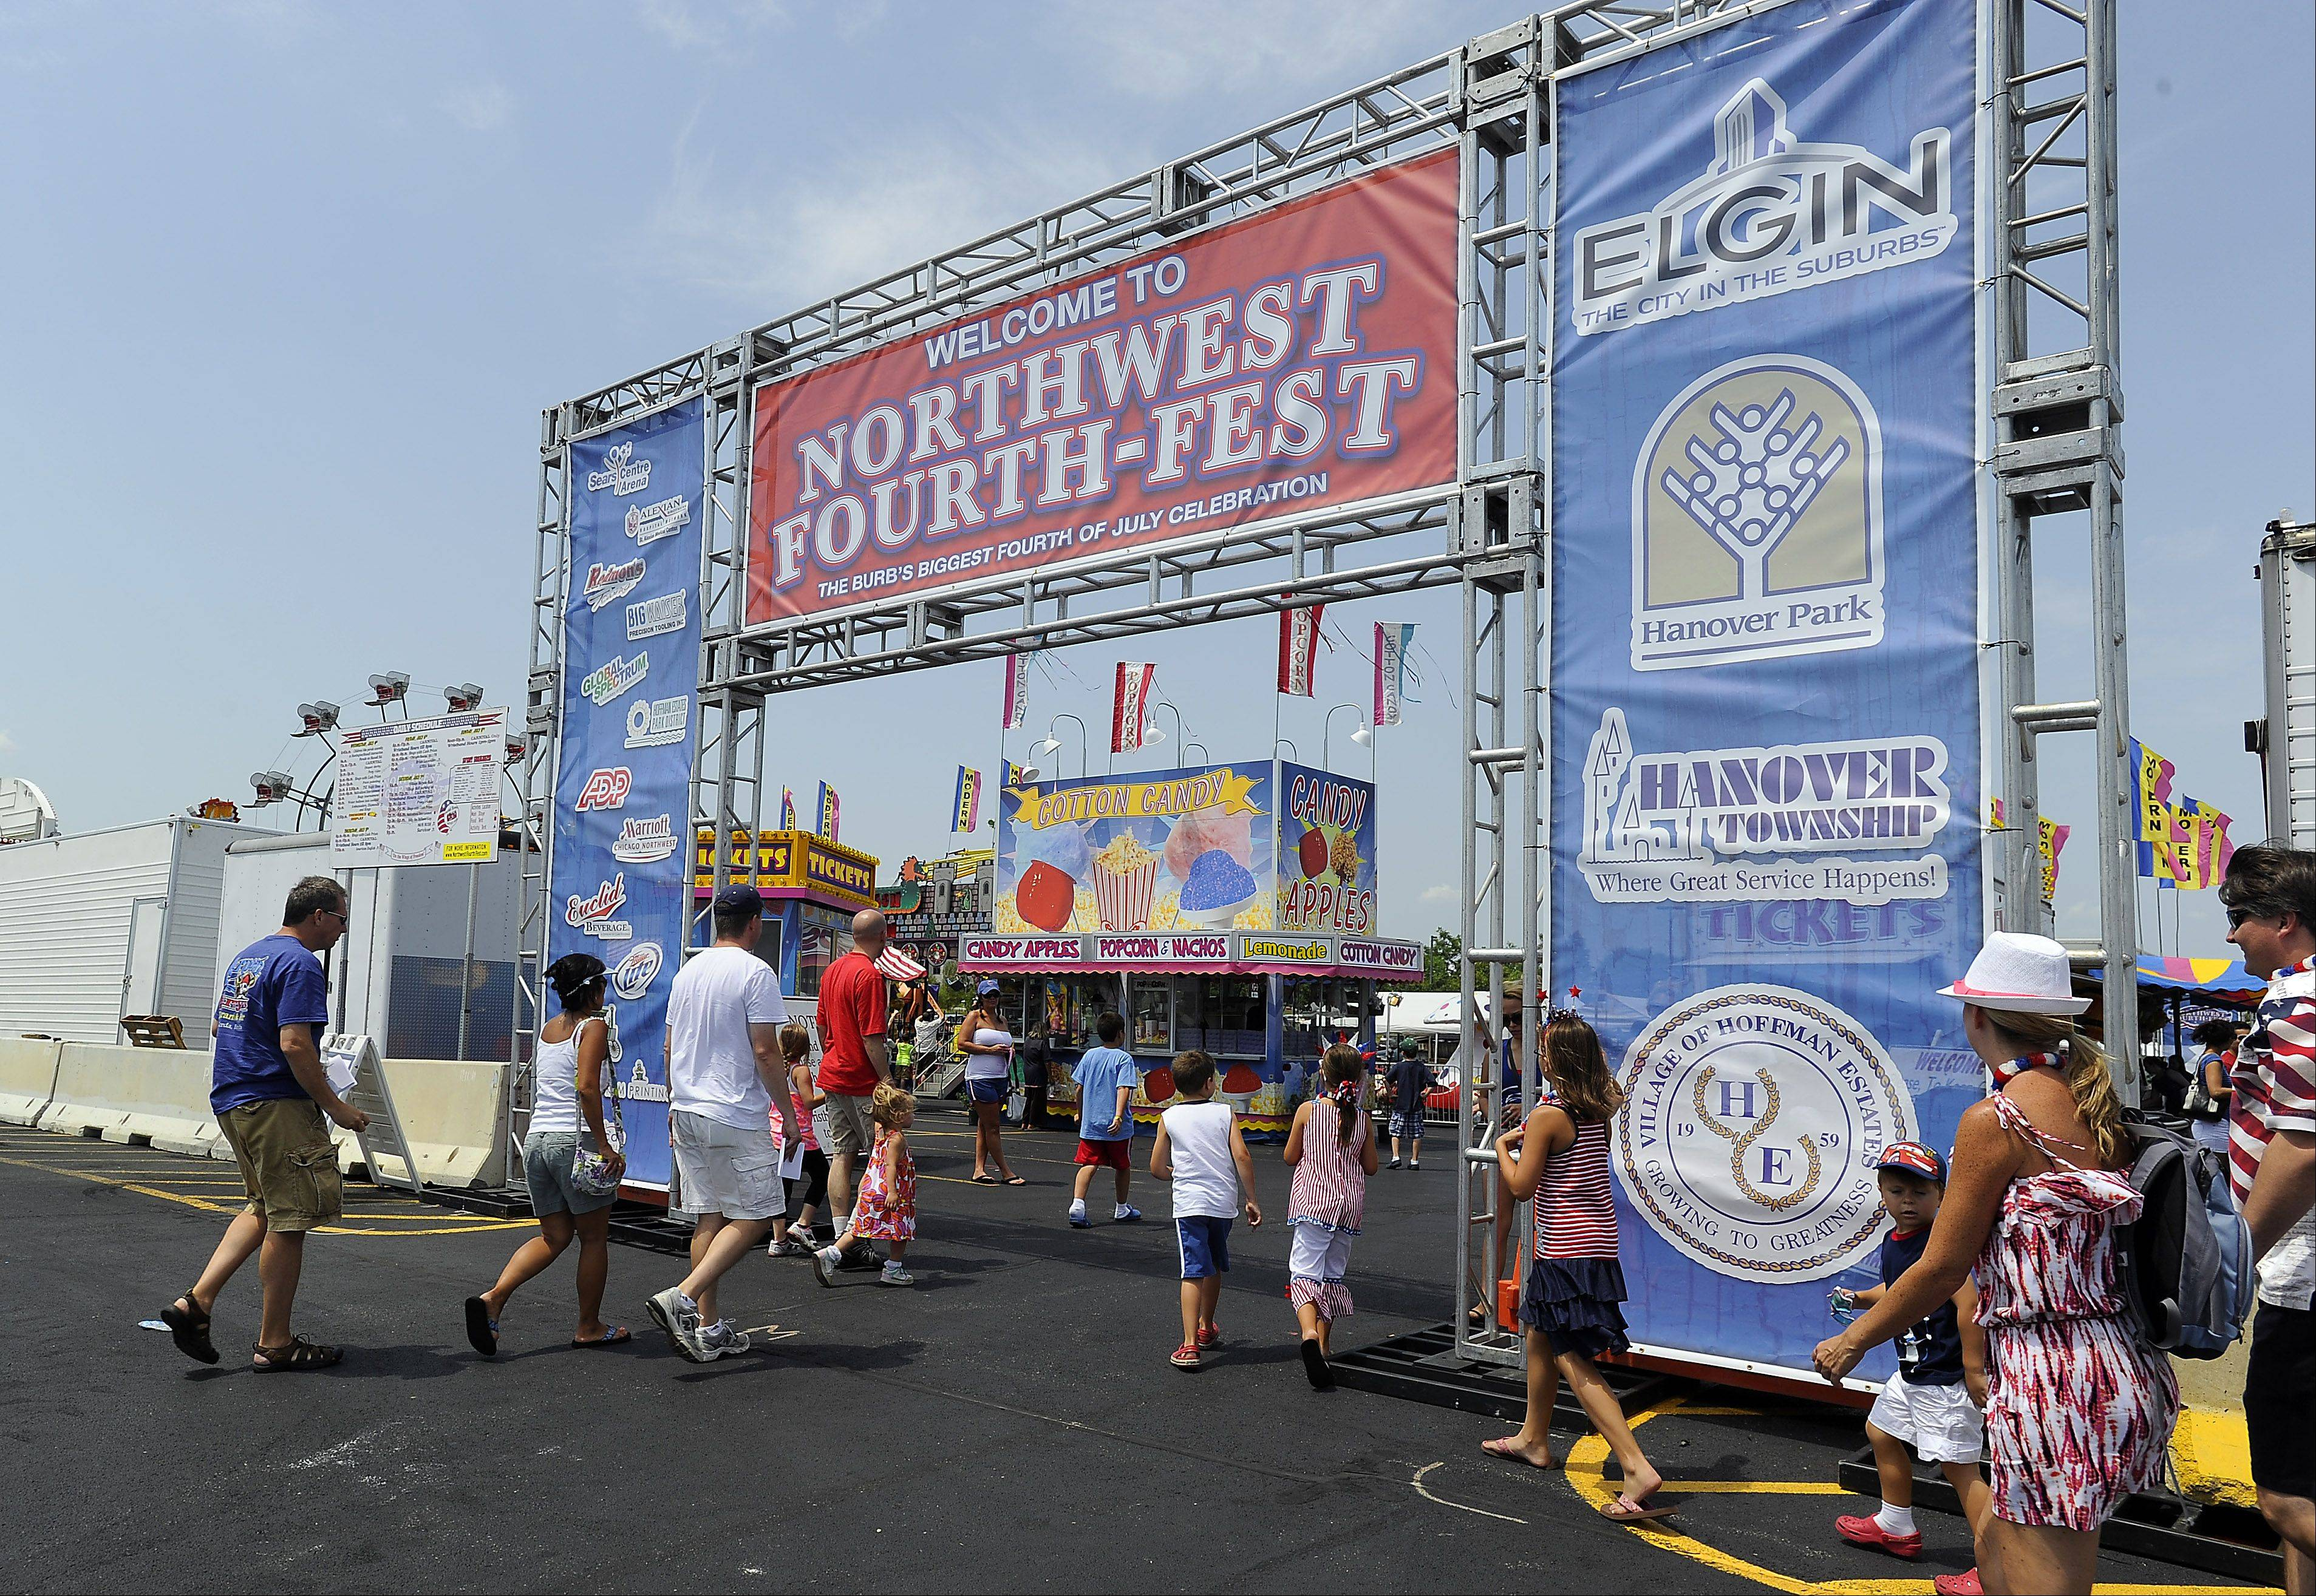 Hoffman Estates is planning to rehire Front Row Marketing to solicit sponsorships for the 2014 Northwest Fourth Fest. The company brought in $35,000 in sponsorships at this year�s fest.